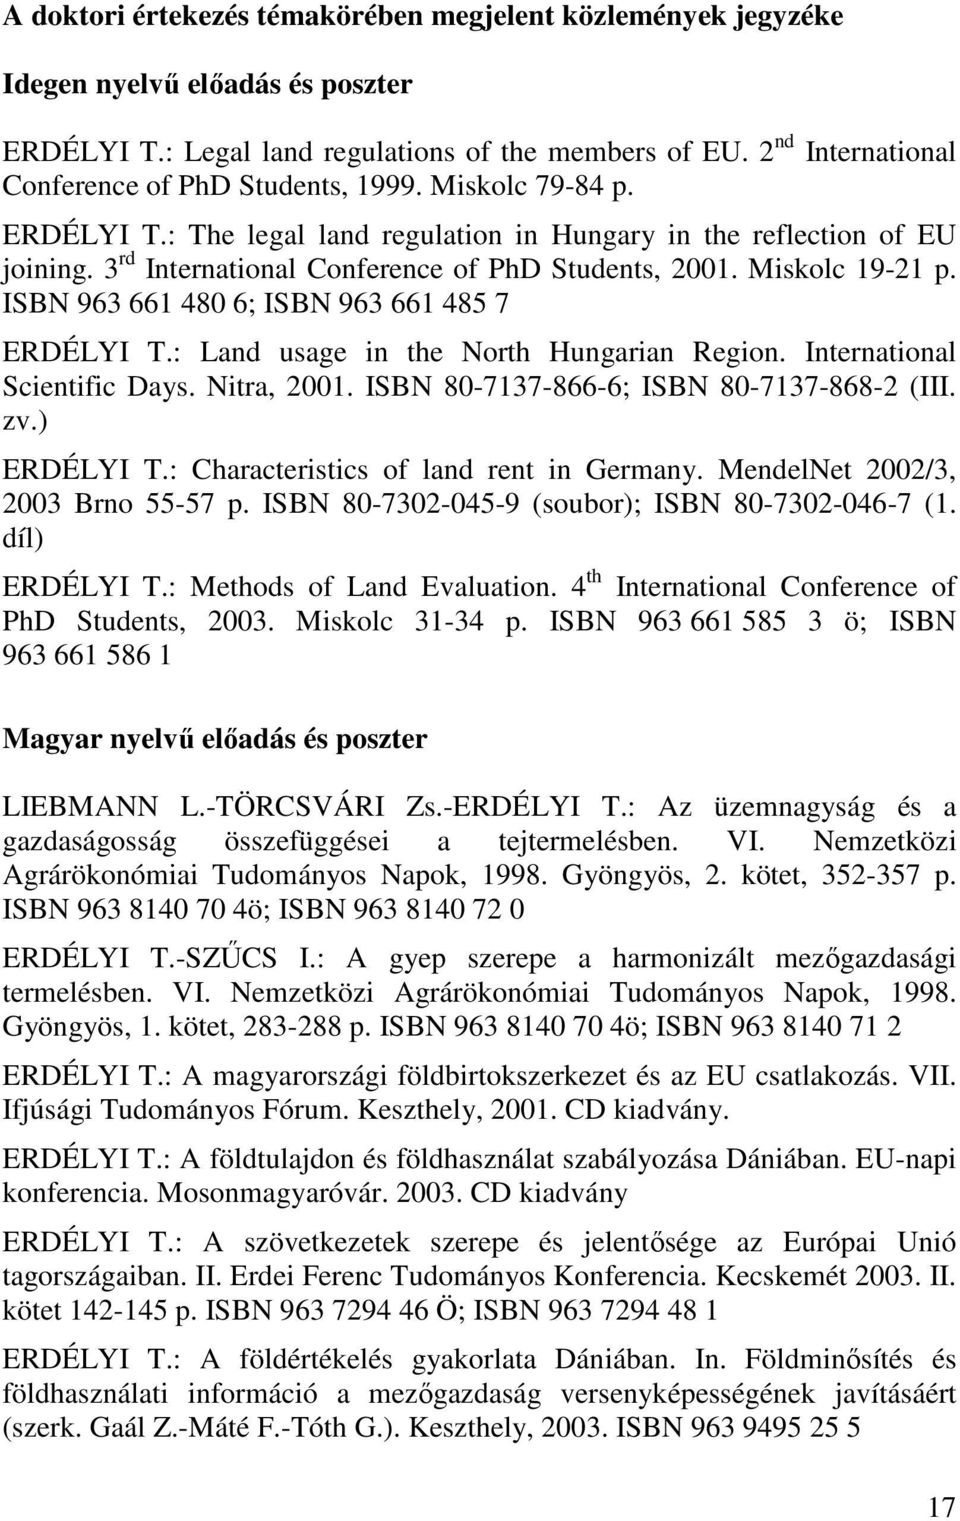 3 rd International Conference of PhD Students, 2001. Miskolc 19-21 p. ISBN 963 661 480 6; ISBN 963 661 485 7 ERDÉLYI T.: Land usage in the North Hungarian Region. International Scientific Days.